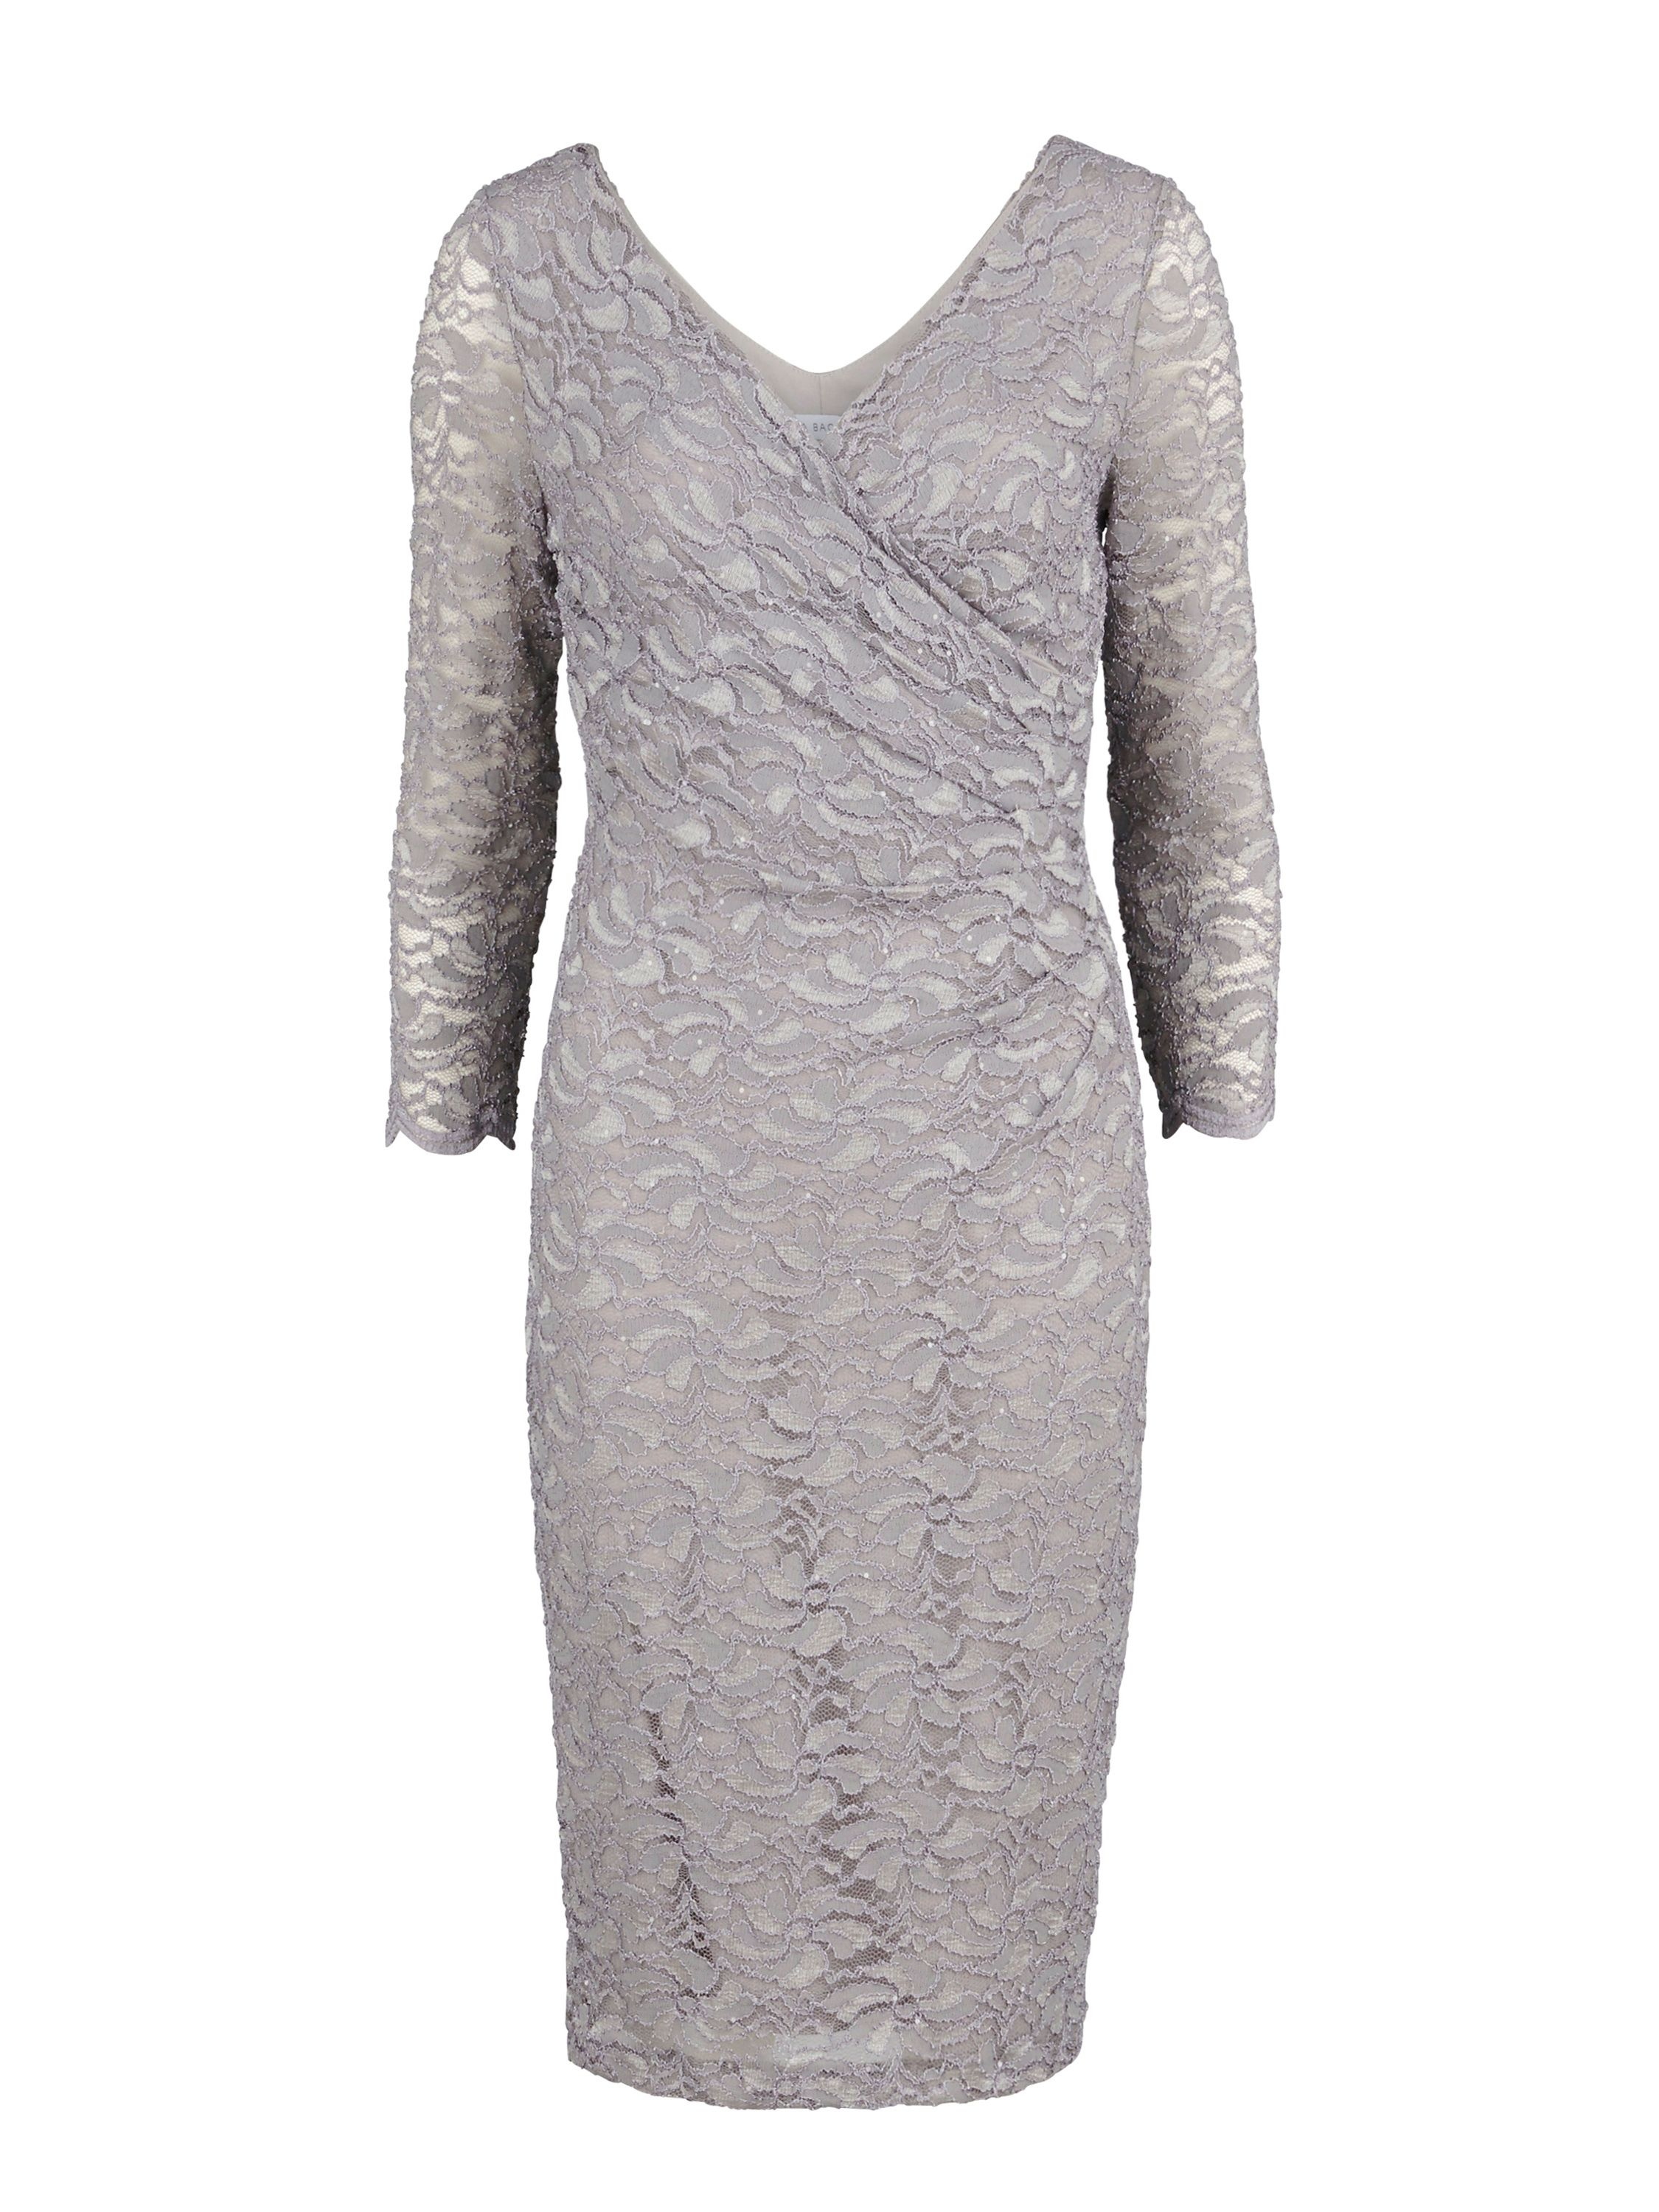 Gina Bacconi Antique corded lace wrap dress, Grey